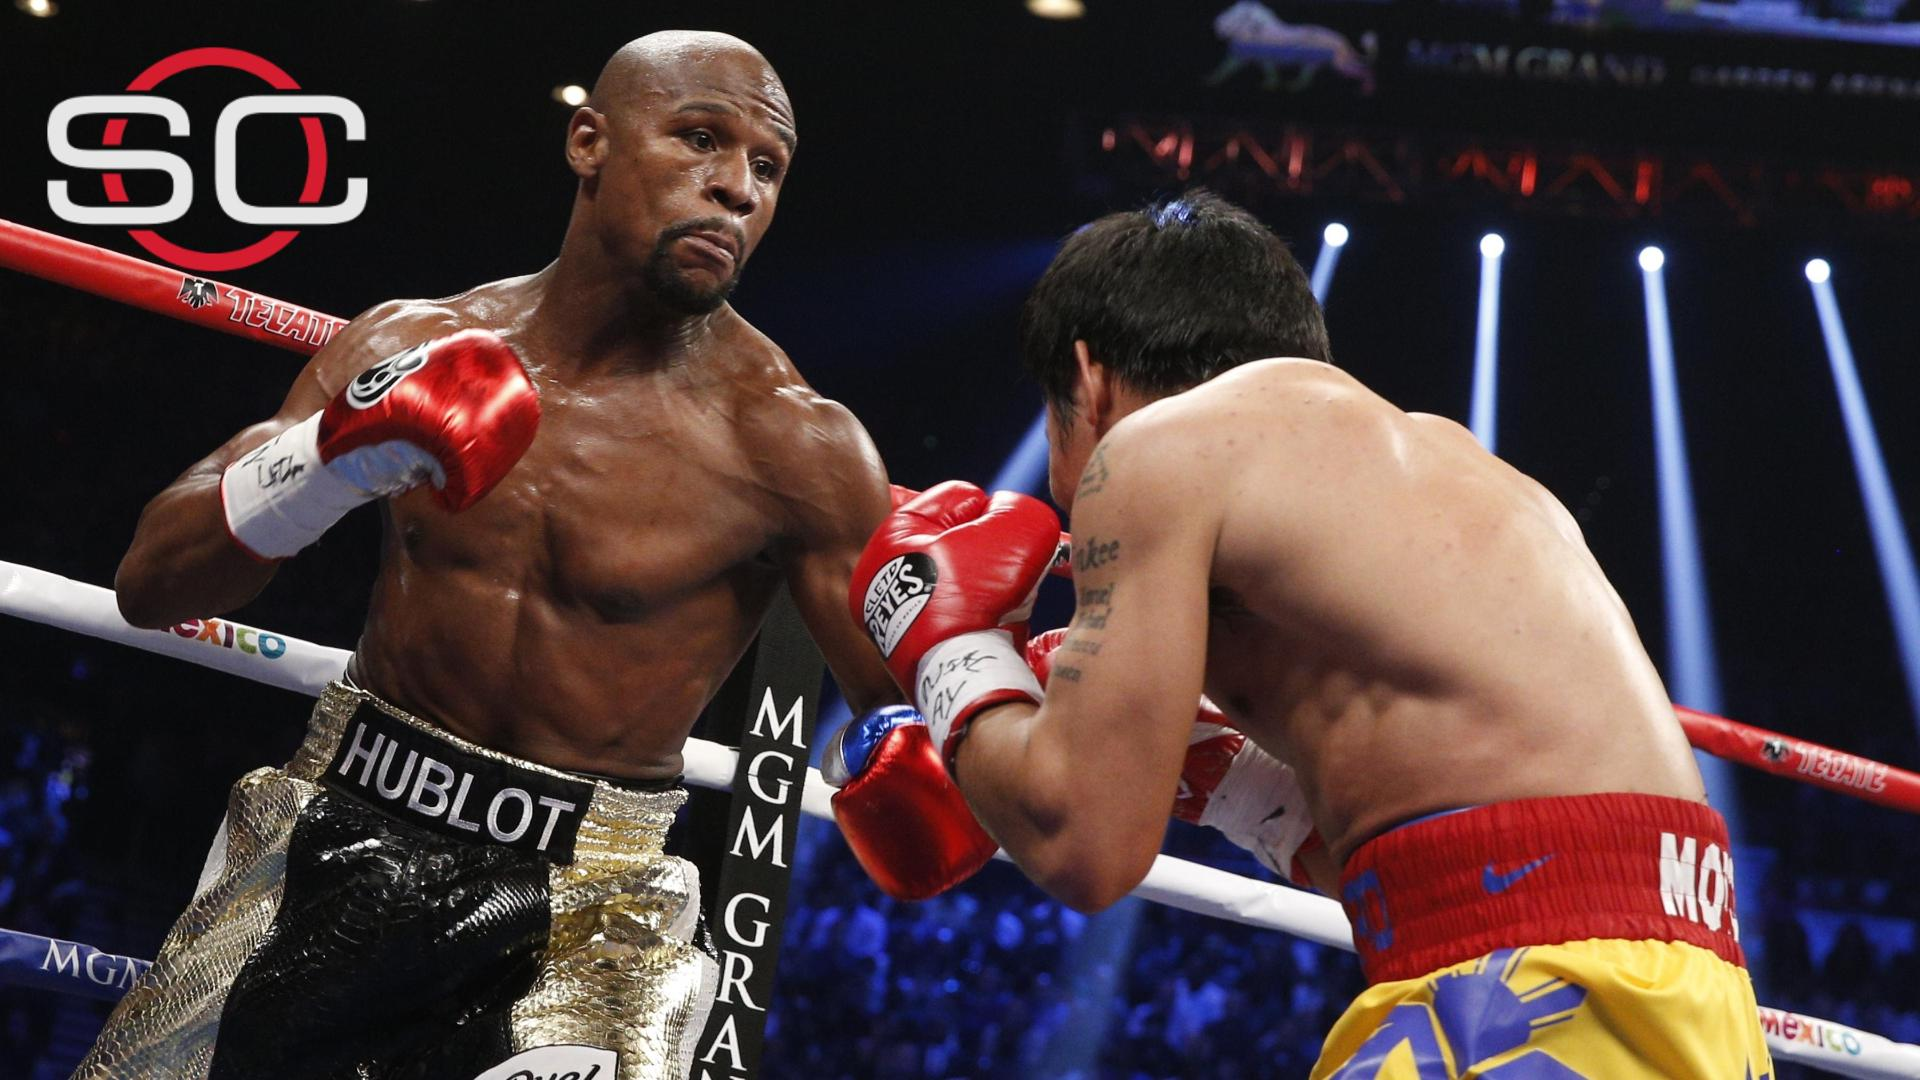 Mayweather used banned IV before Pacquiao fight